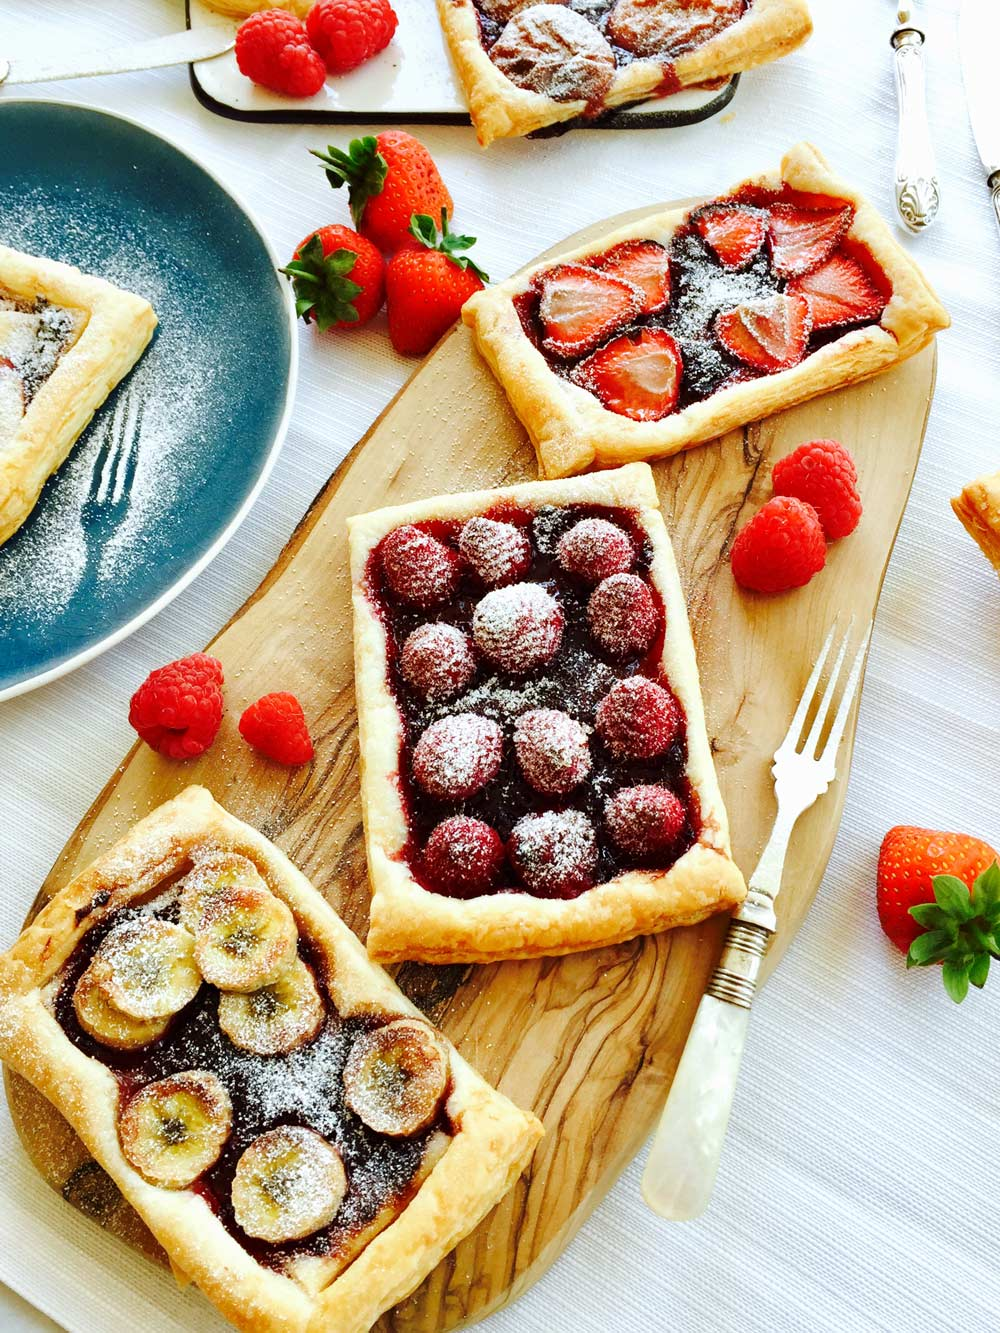 Tutti fruity jam and fruit tartlets